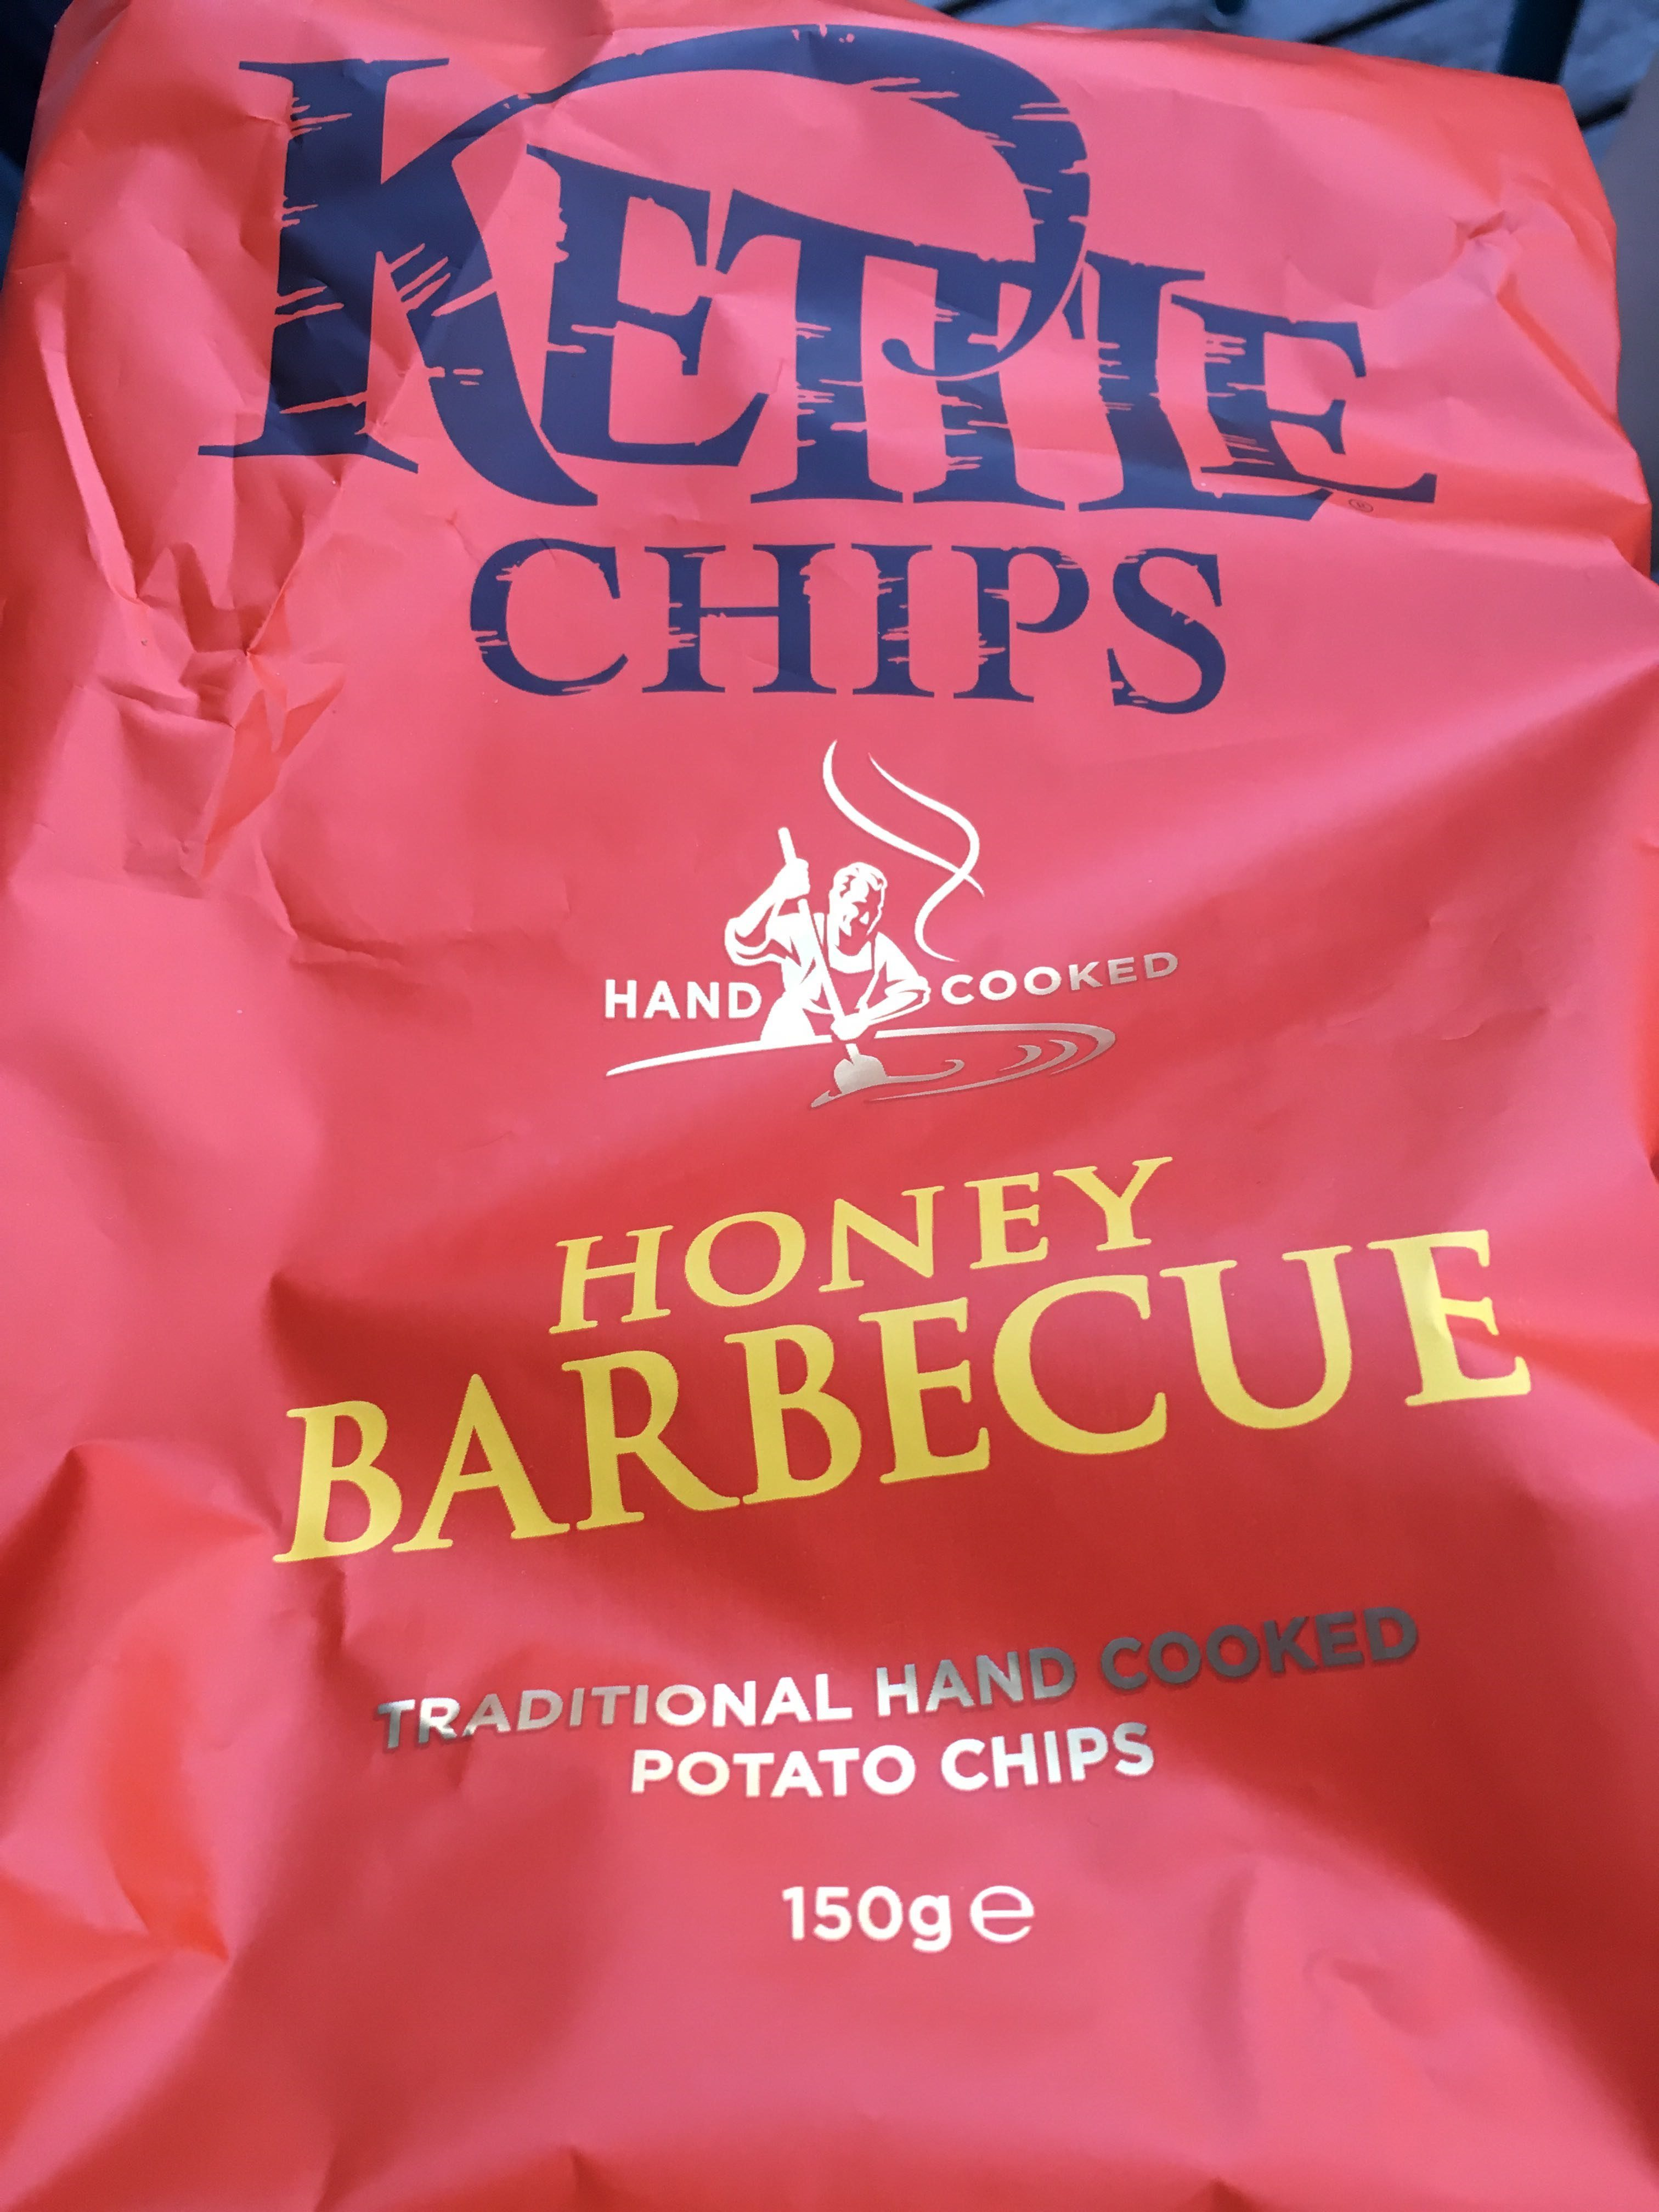 Kettle Chips Honey Barbecue - Product - fr